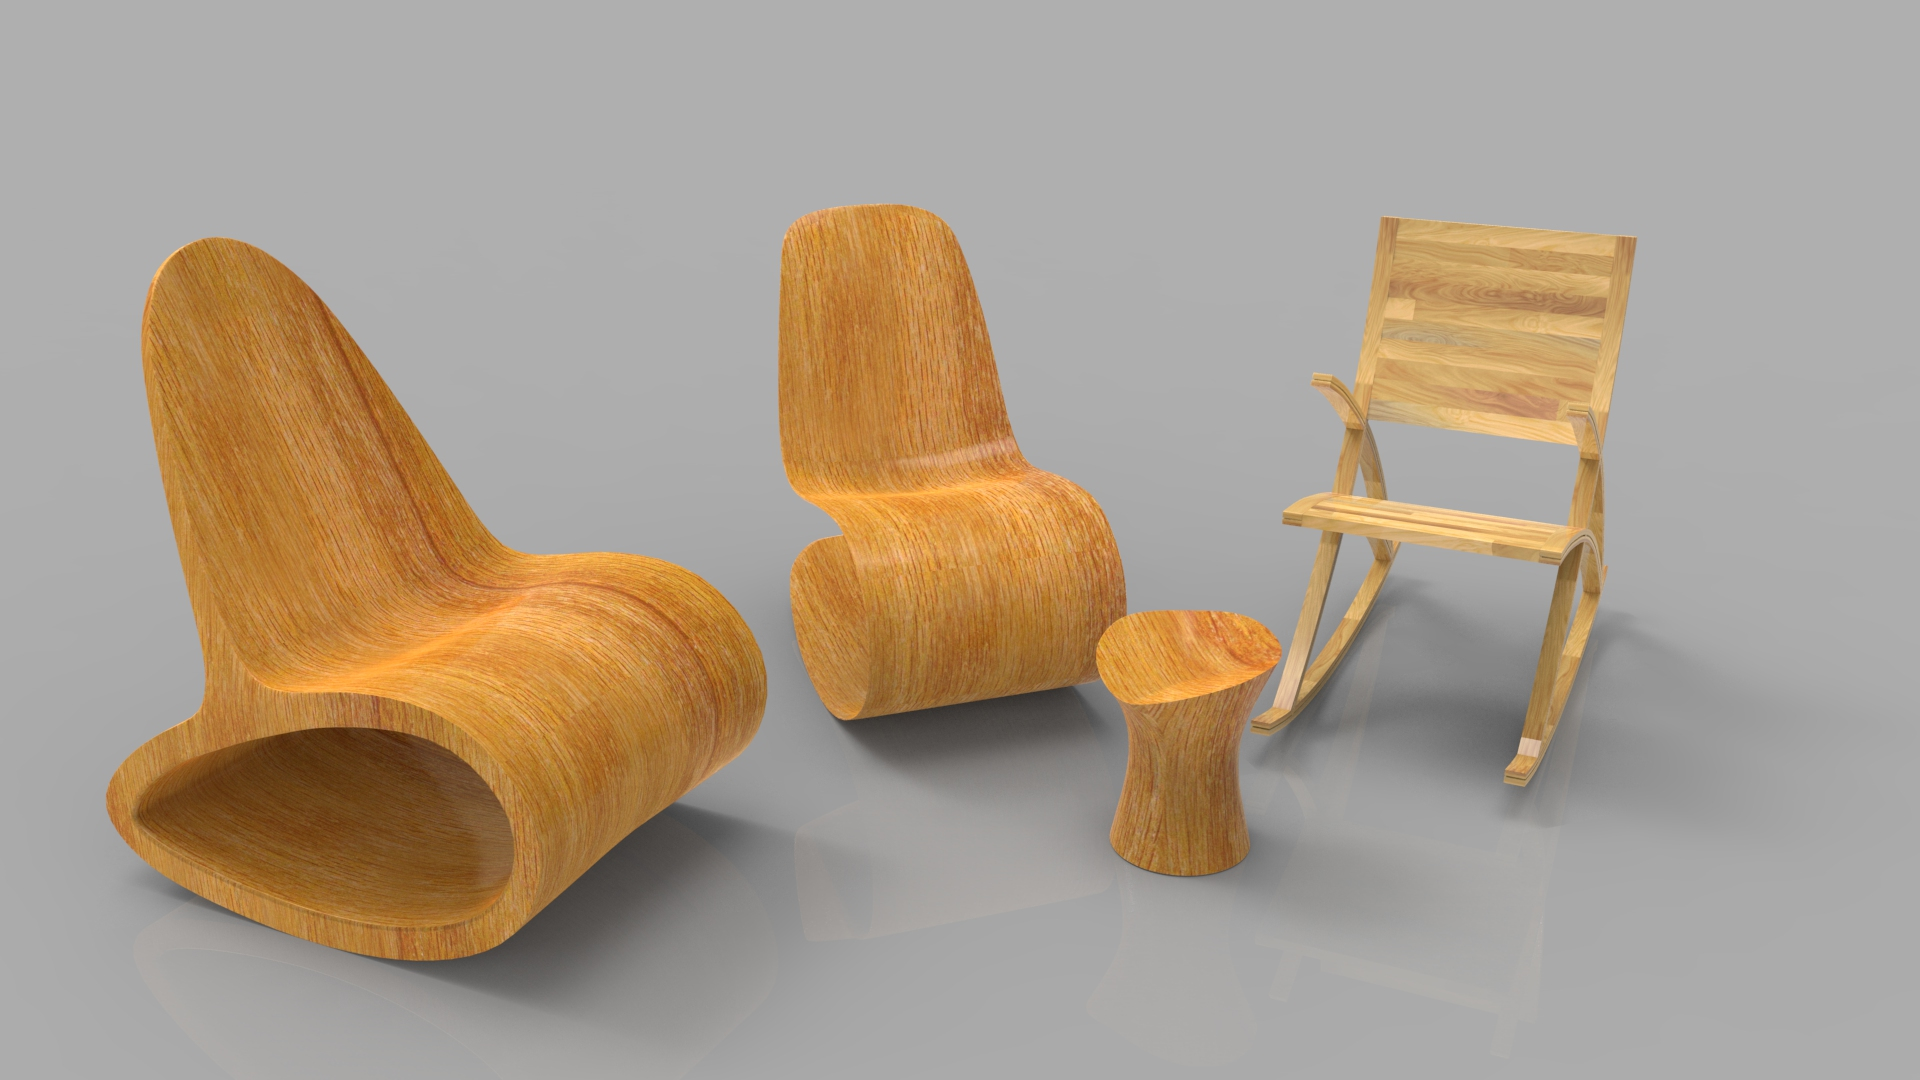 ... Wooden Chair Collection.64 ...